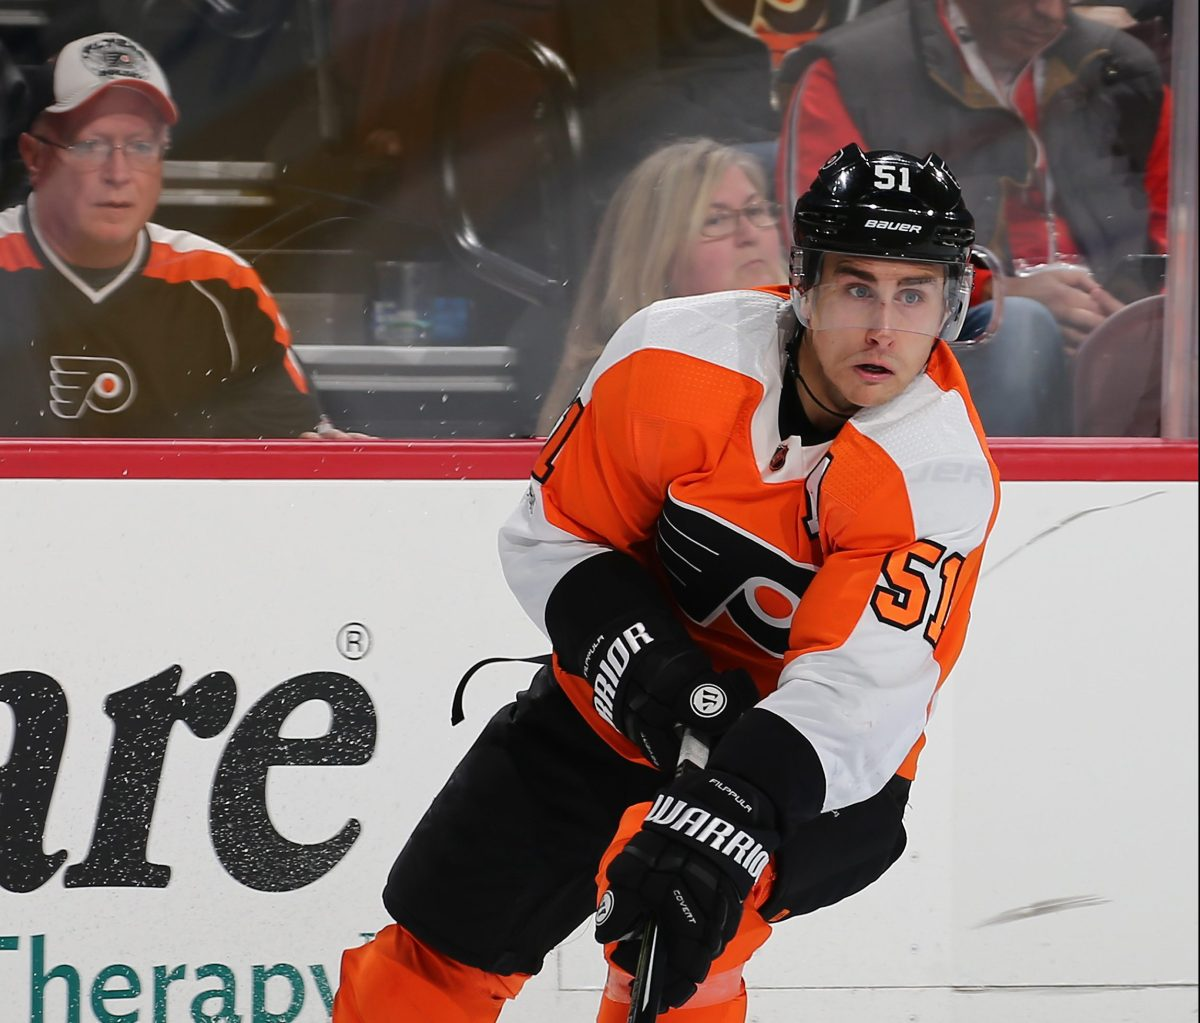 Flyers: Who stays? Who goes? Follow the money